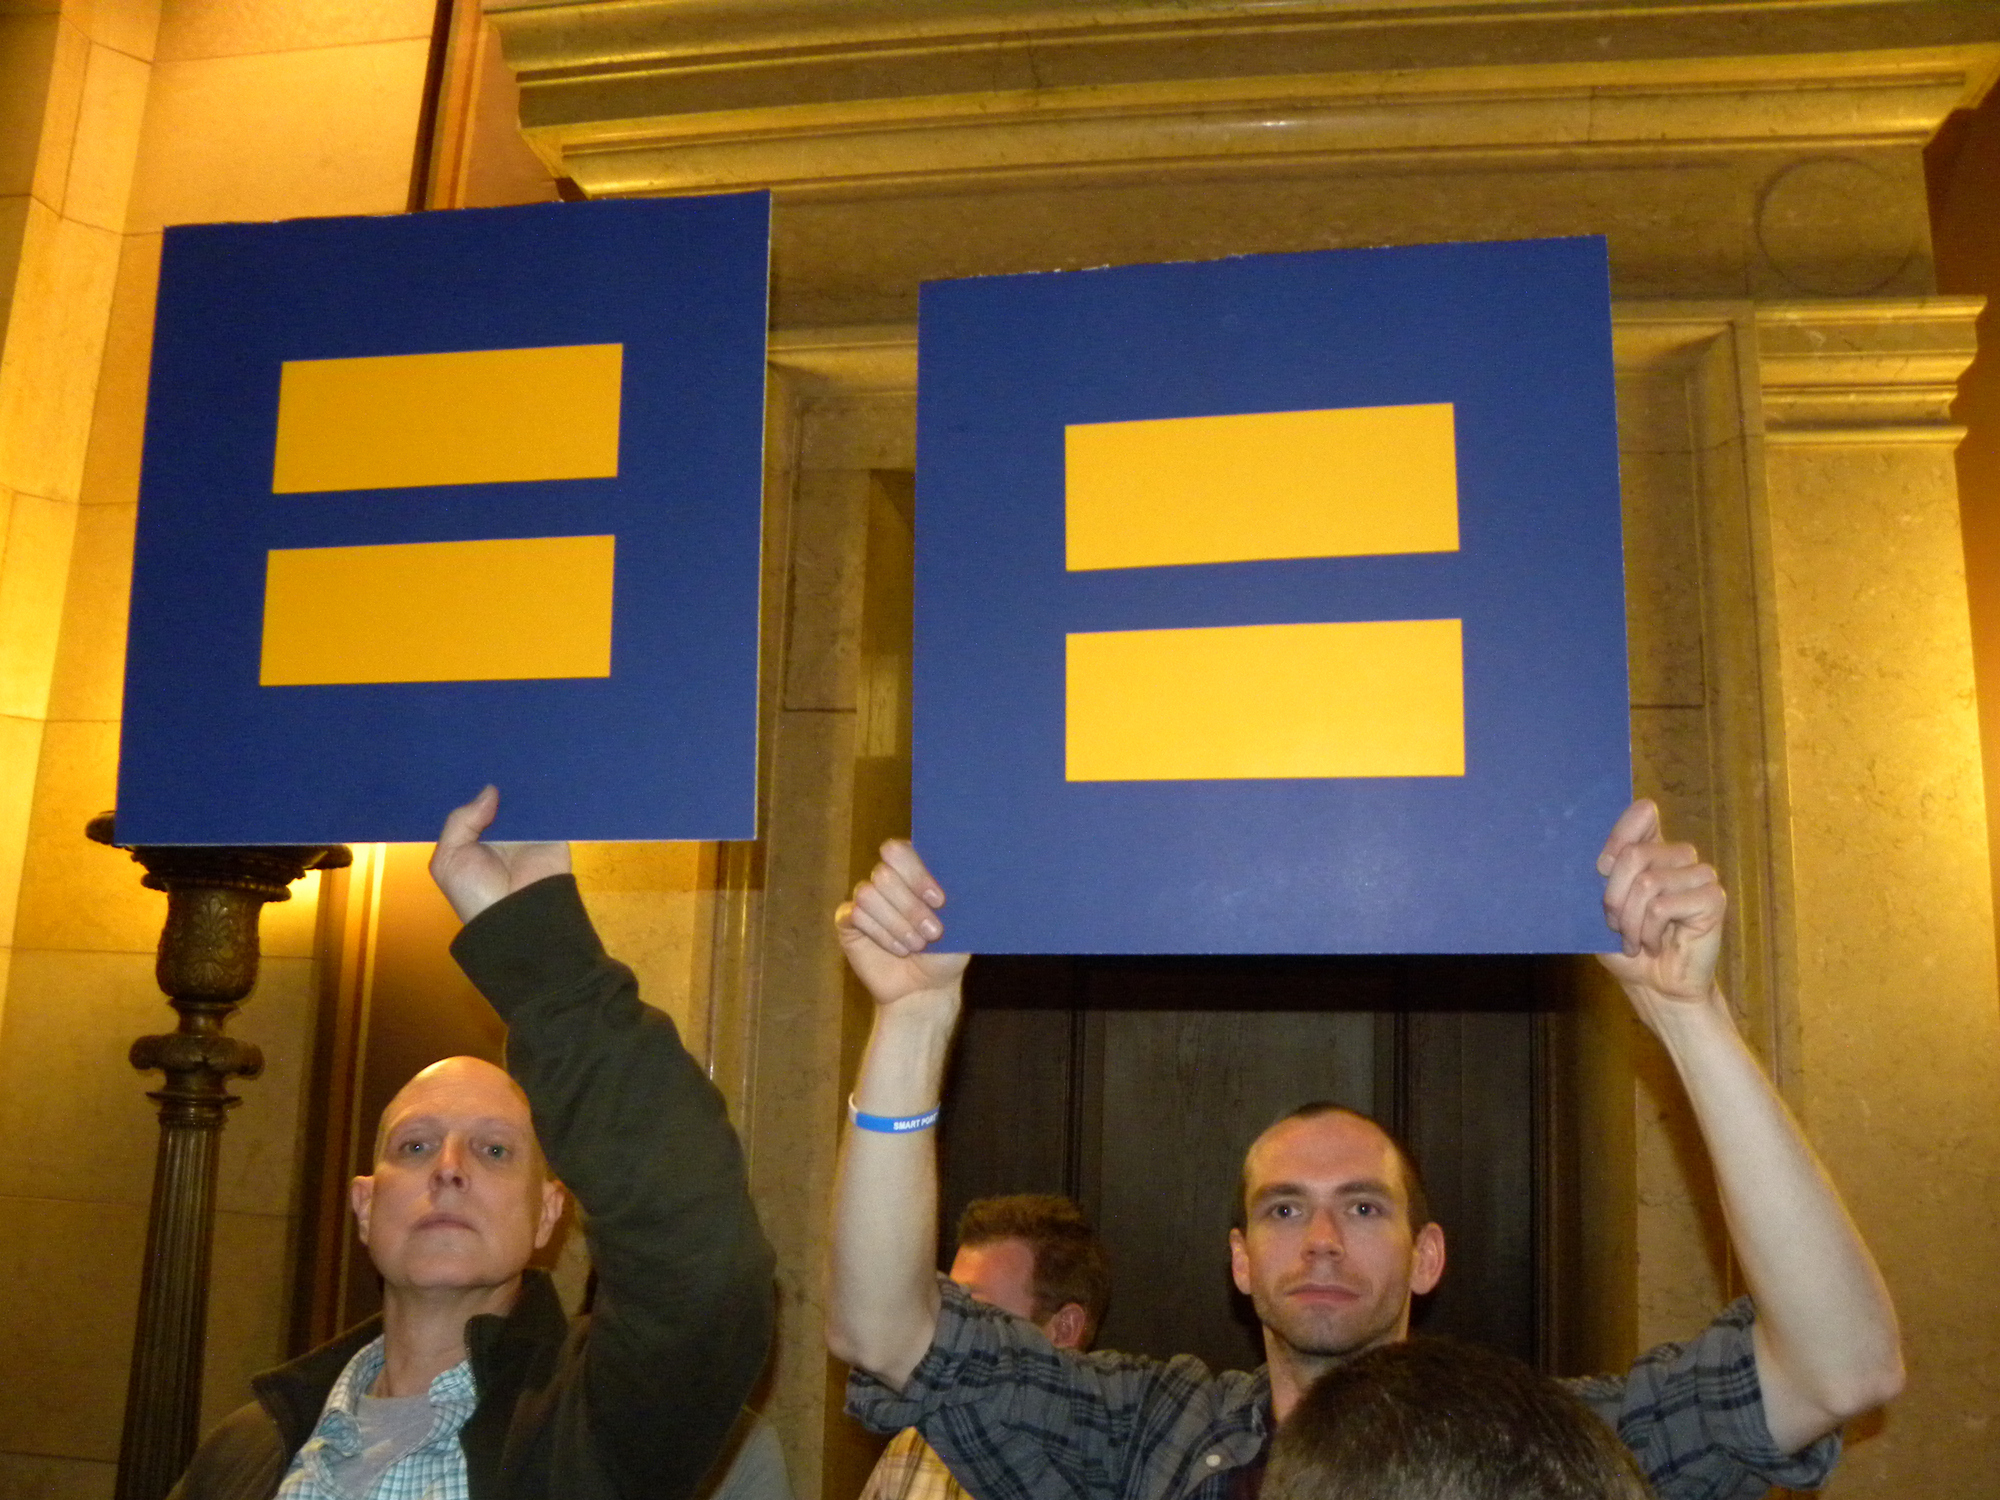 Judge rules Colorado ban on same-sex marriage unconstitutional